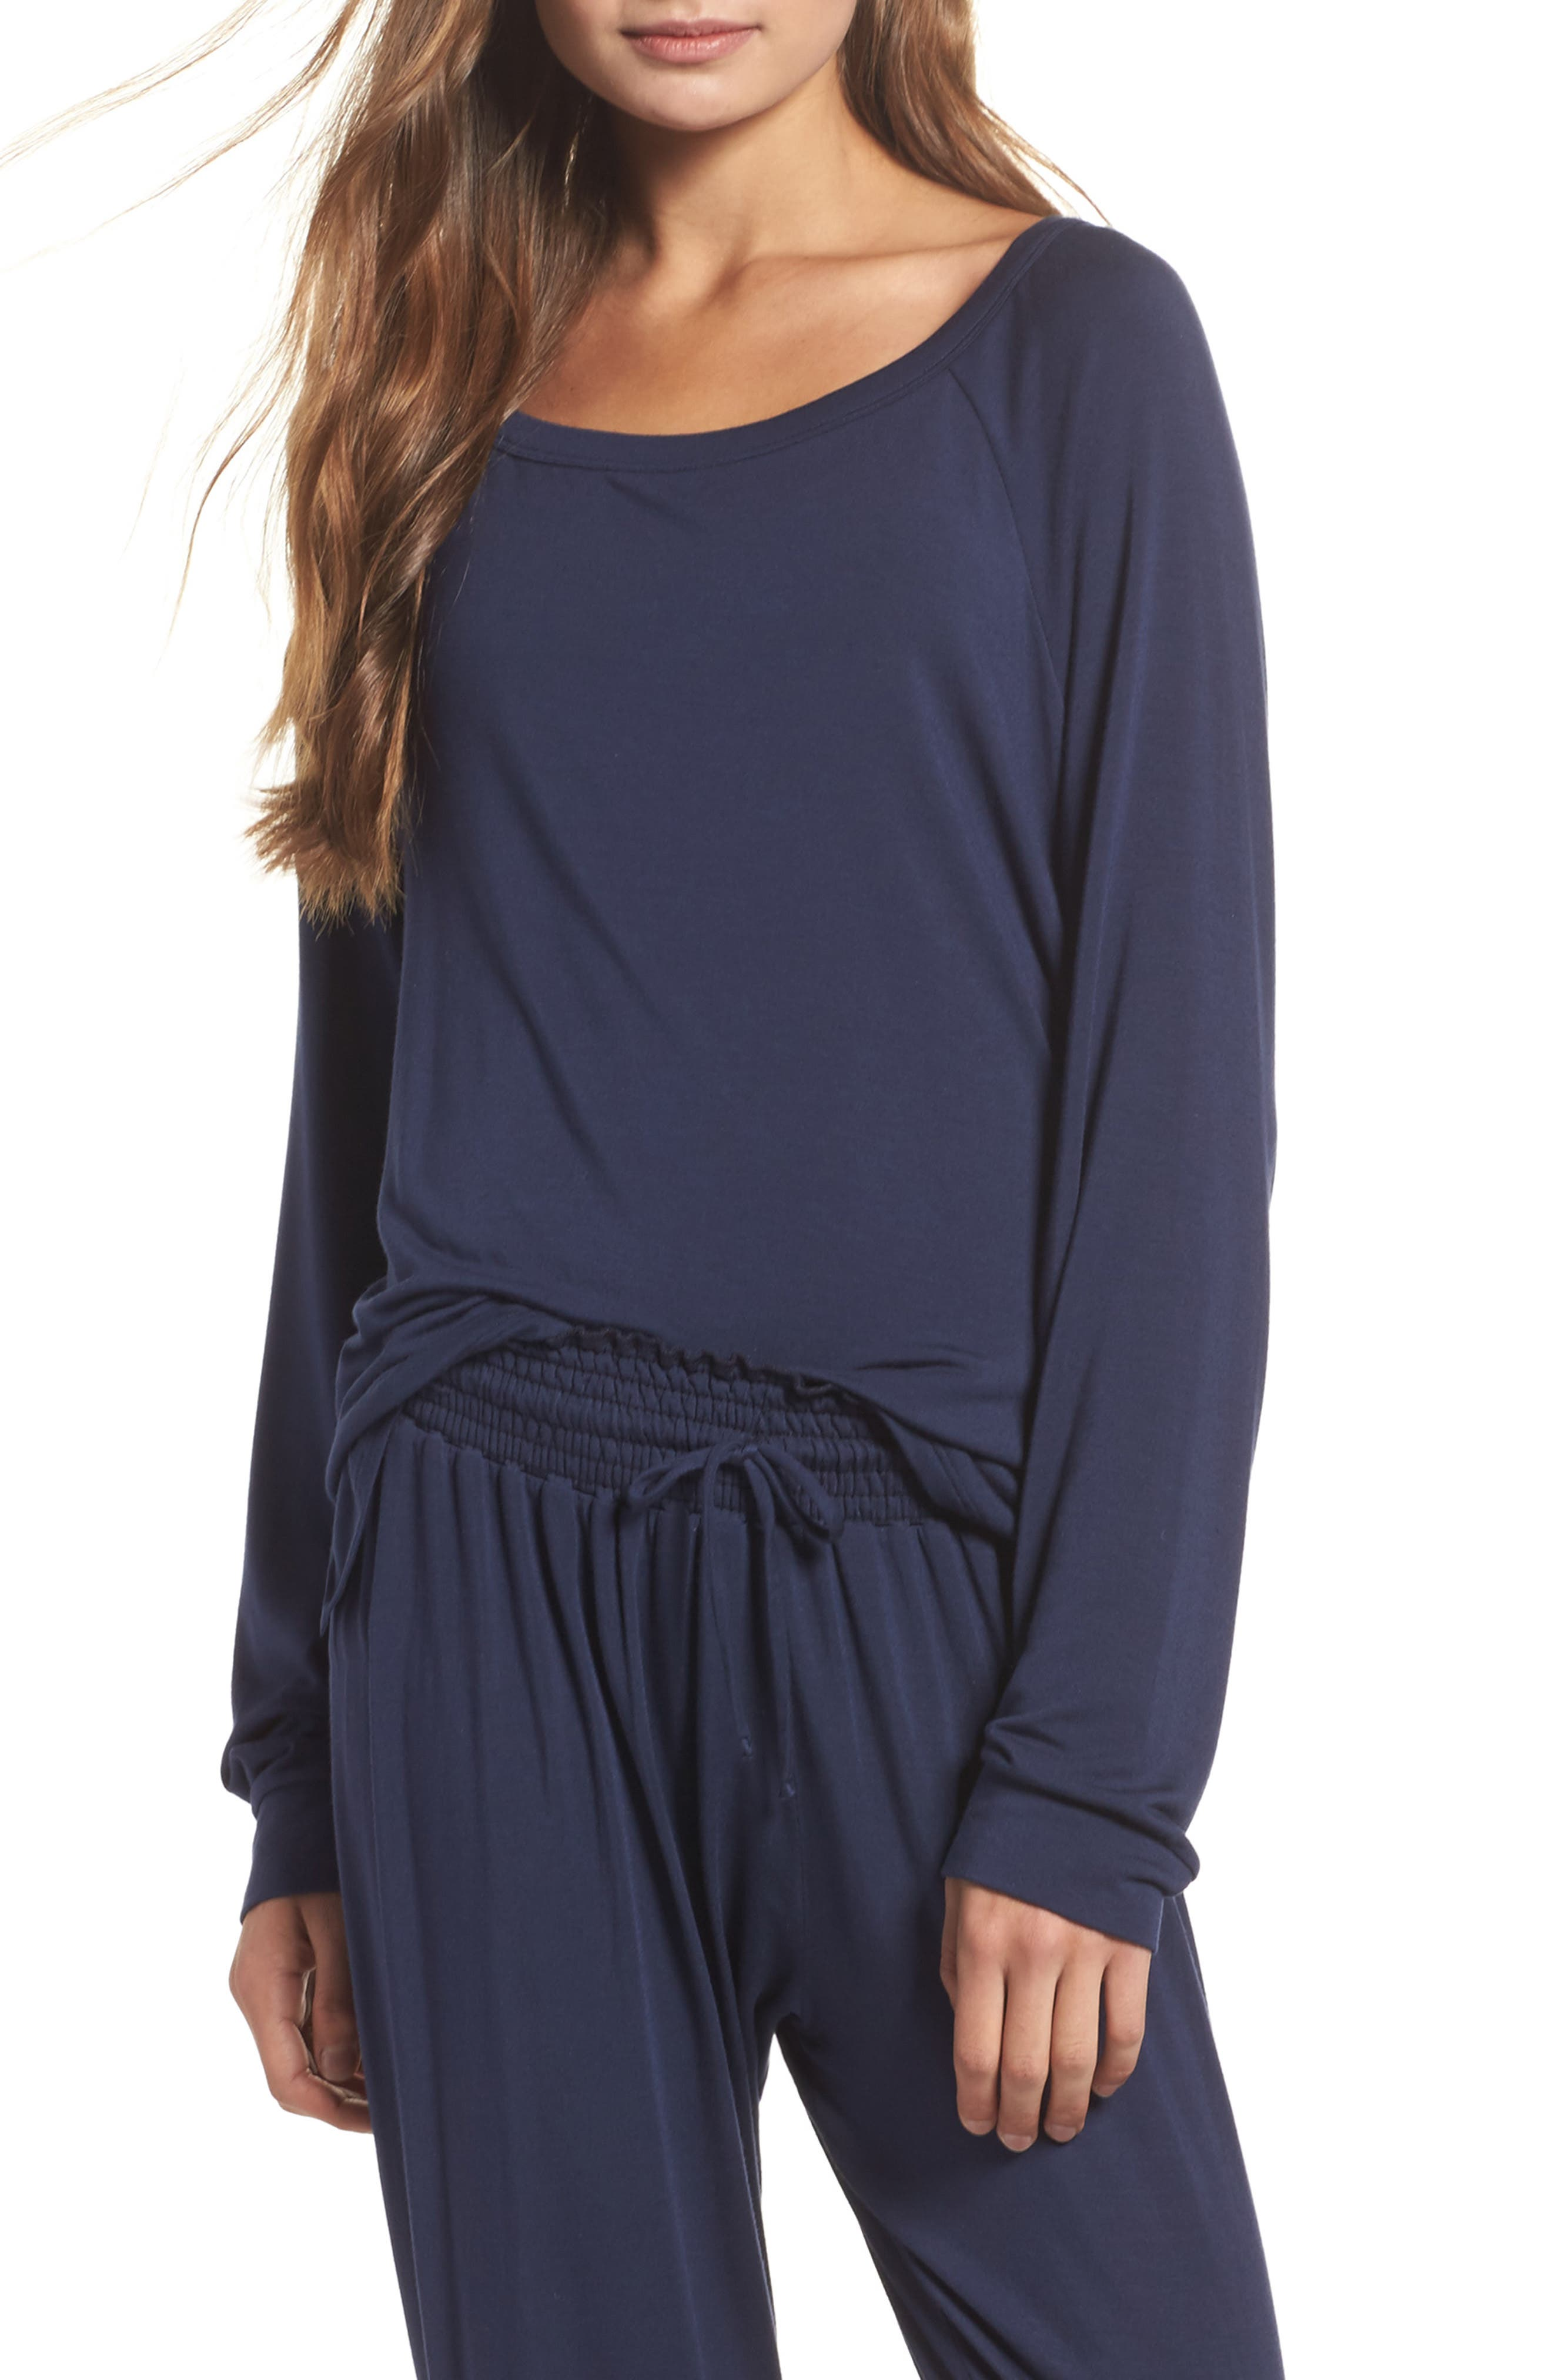 Amber Long Sleeve Top,                         Main,                         color, Twilight